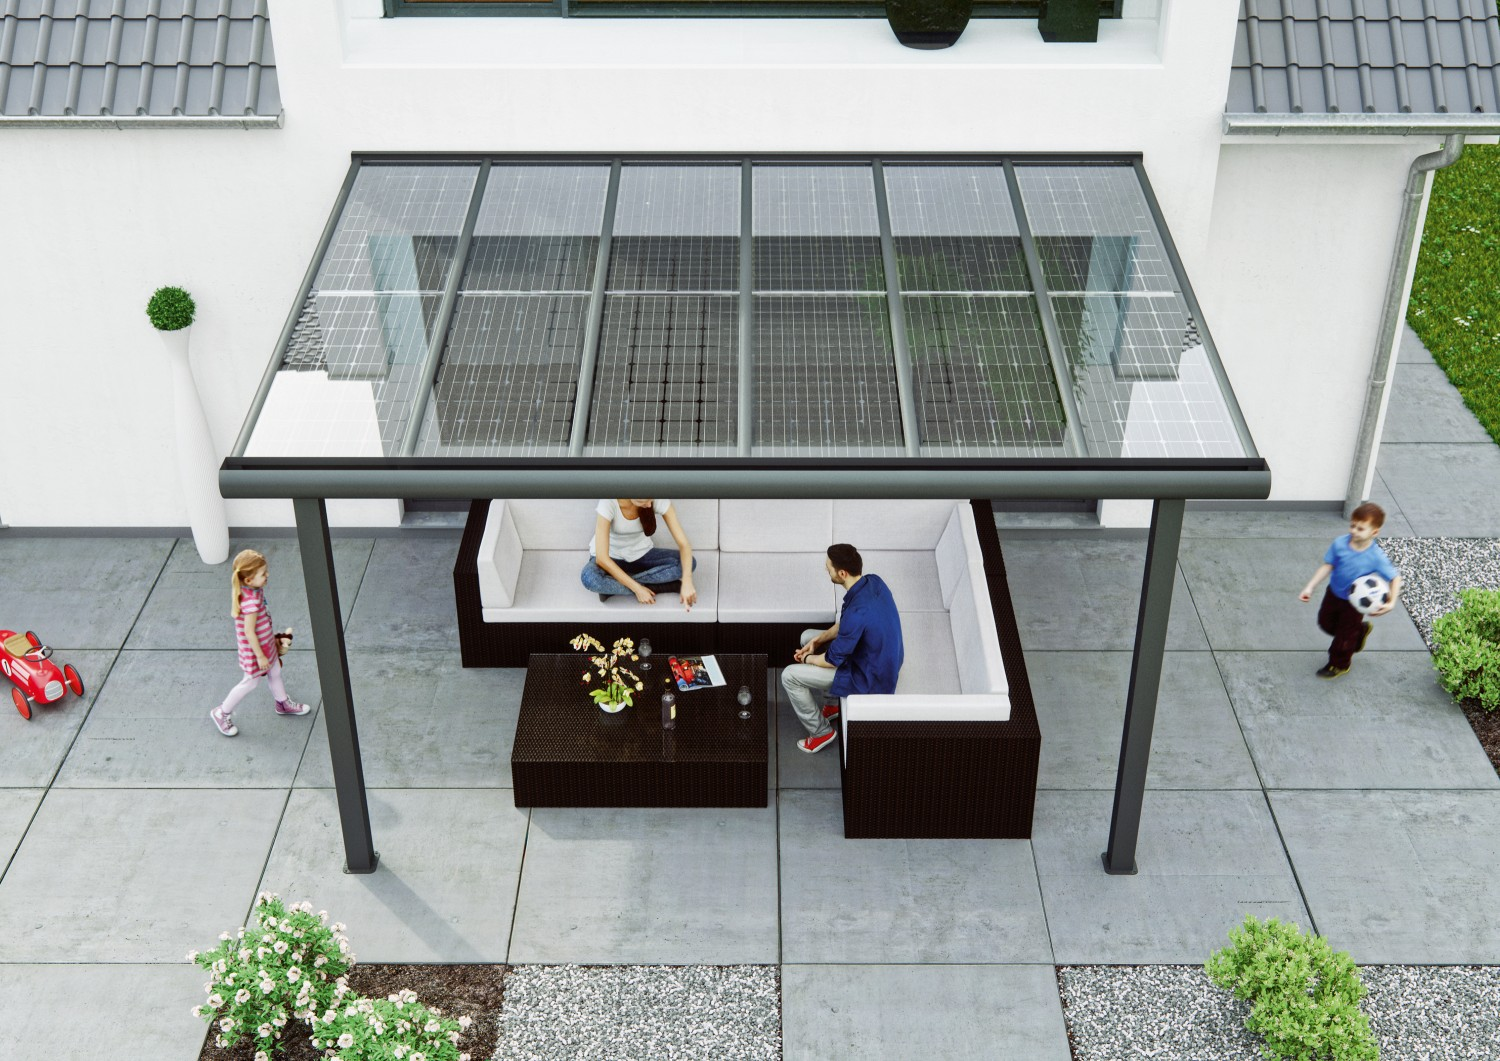 solarmodule von auf terrasse und. Black Bedroom Furniture Sets. Home Design Ideas